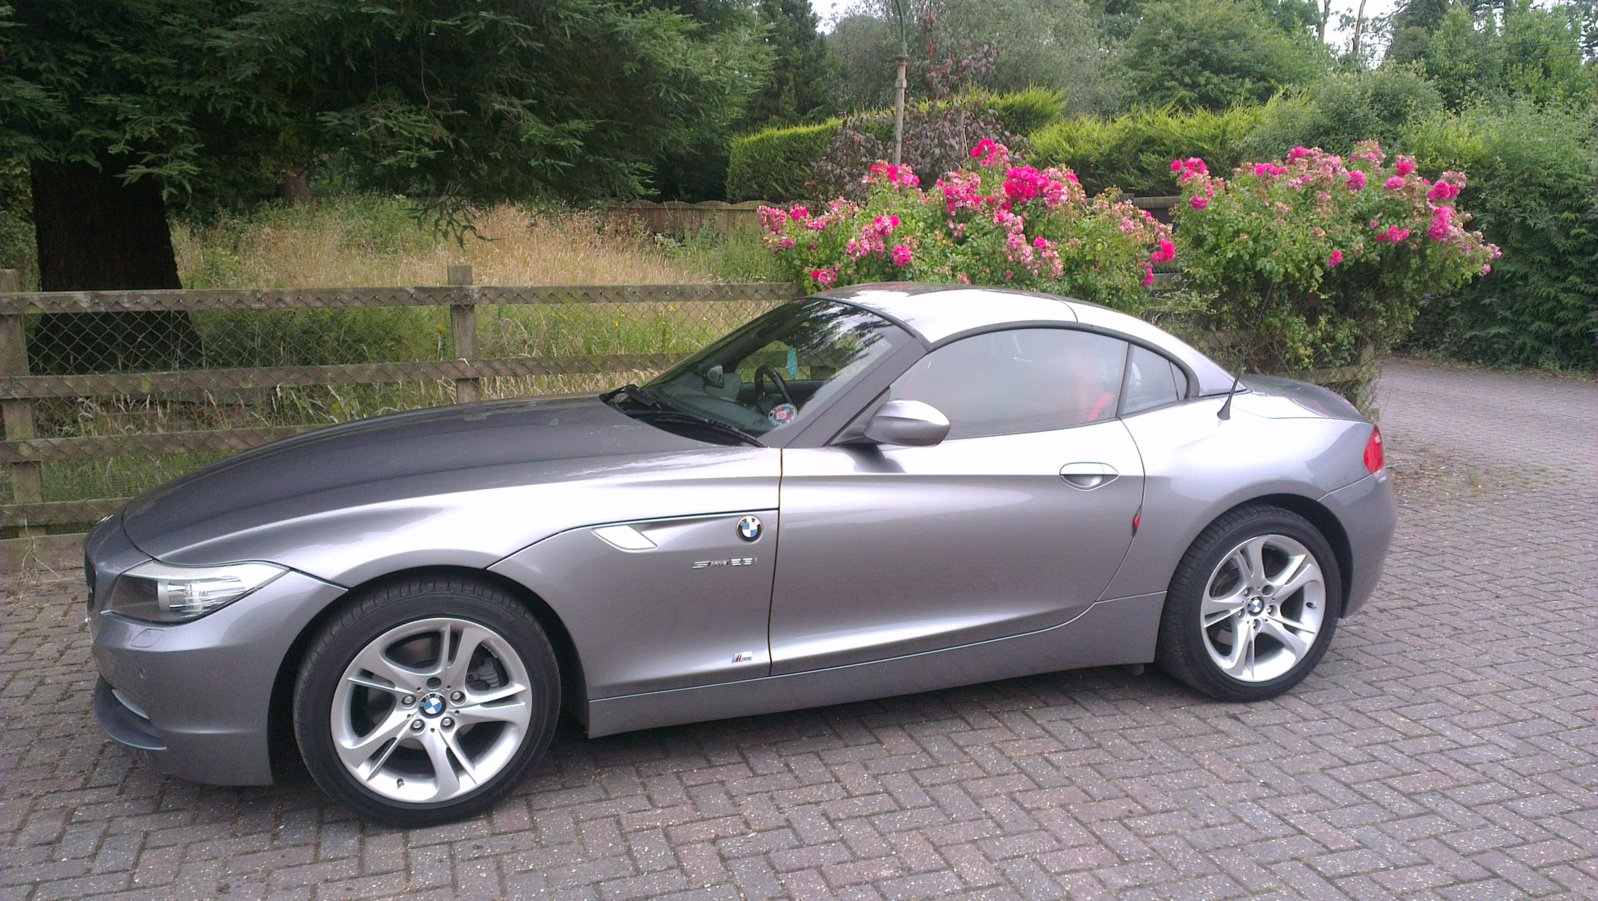 getting ready for vanitybmw day bmw z1 z4 z8 z3 forum and technical database. Black Bedroom Furniture Sets. Home Design Ideas